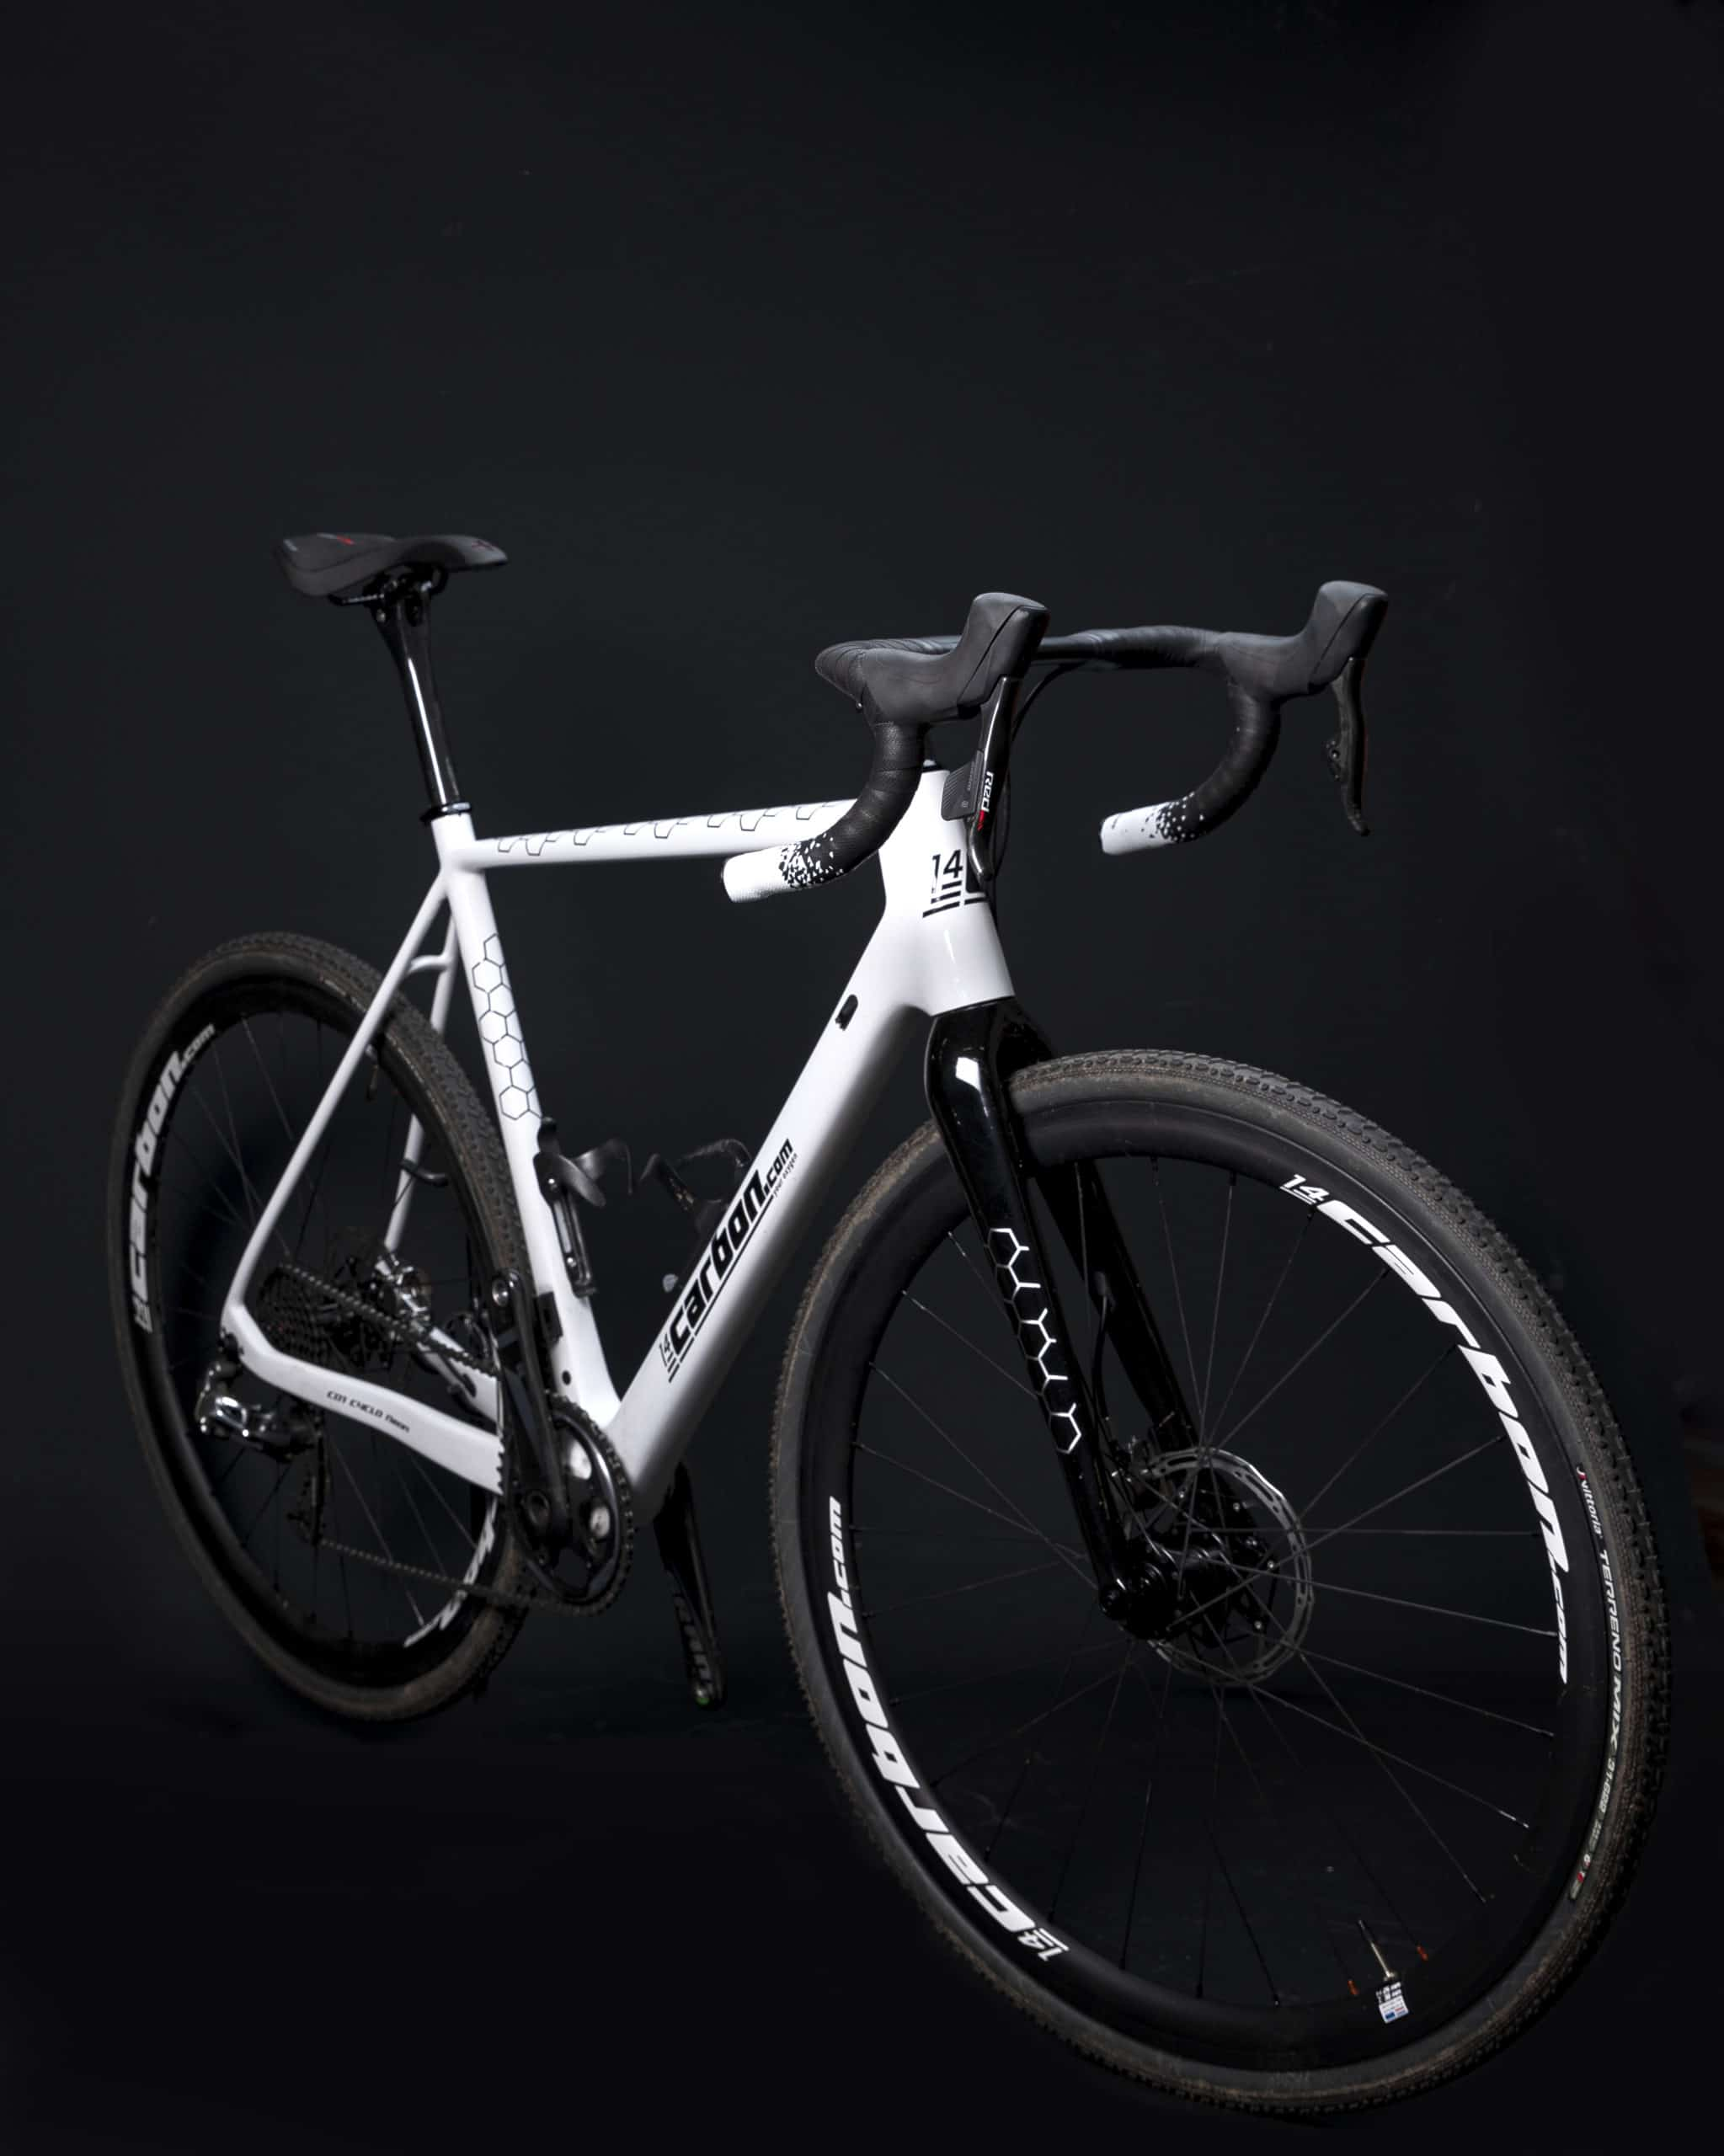 Light Gravelracer zwart wit - 14CARBON